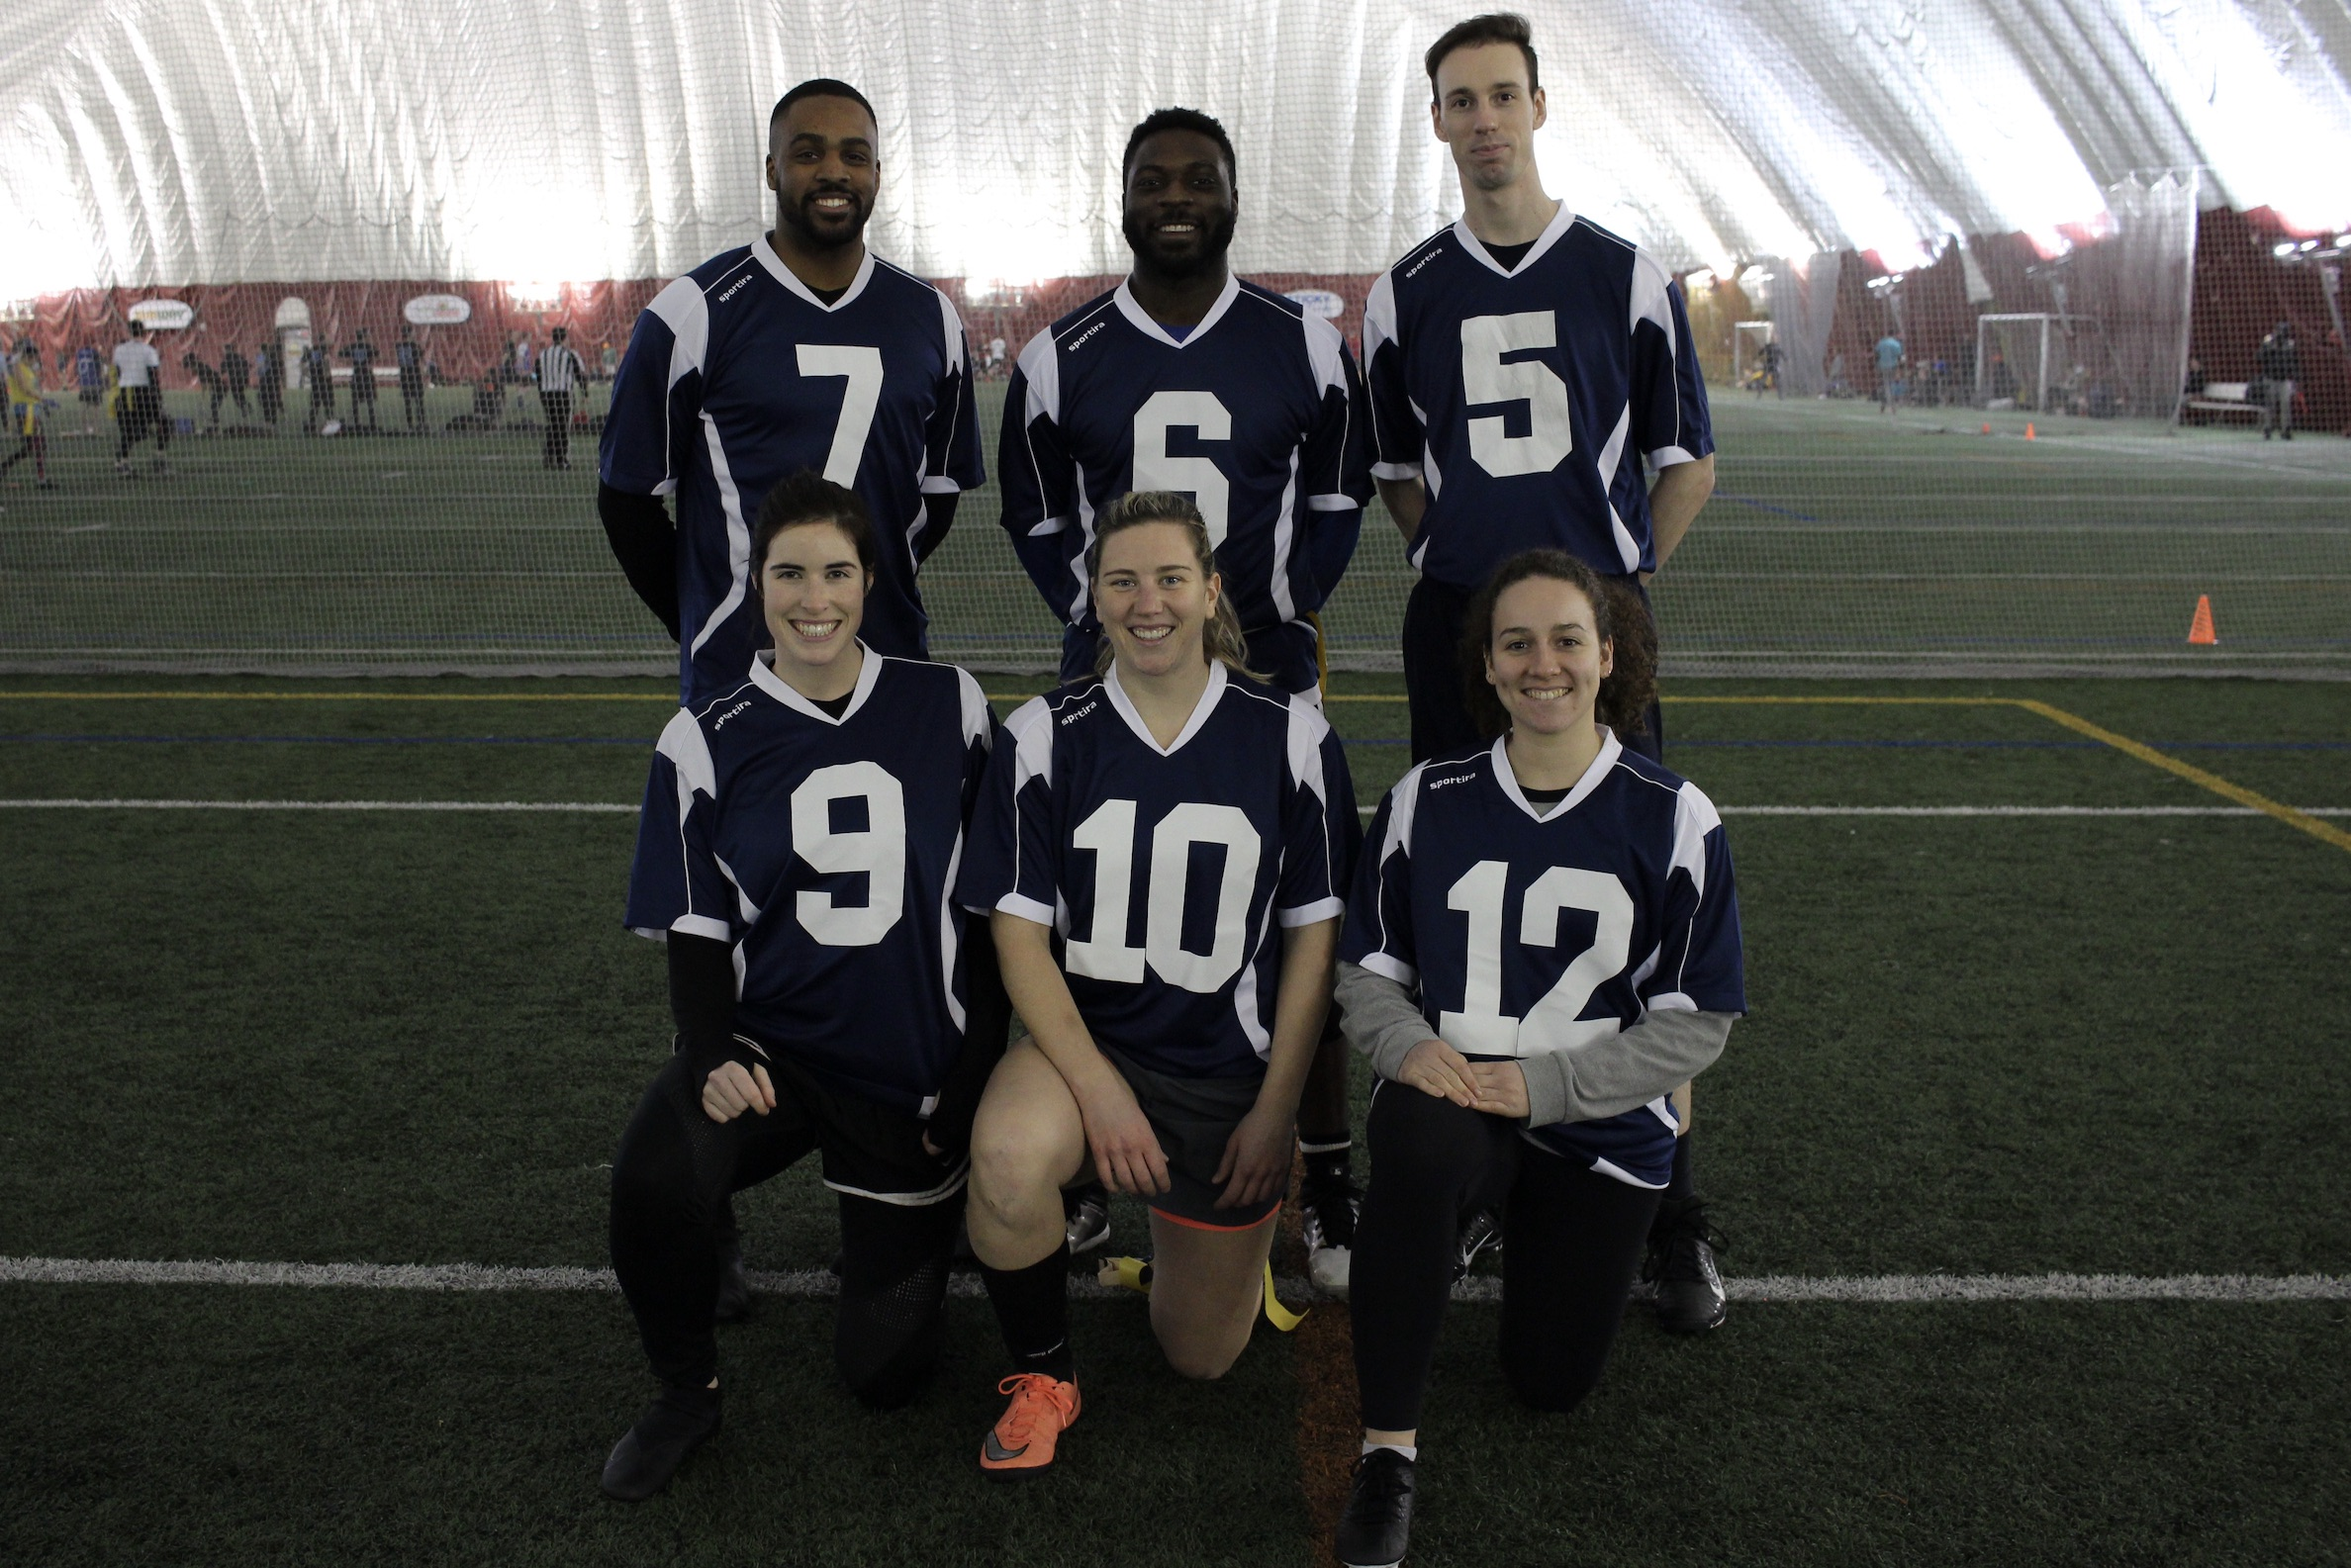 HIGHLIGHTS FROM CO-ED AND WOMEN'S DIVISION KICKS OFF